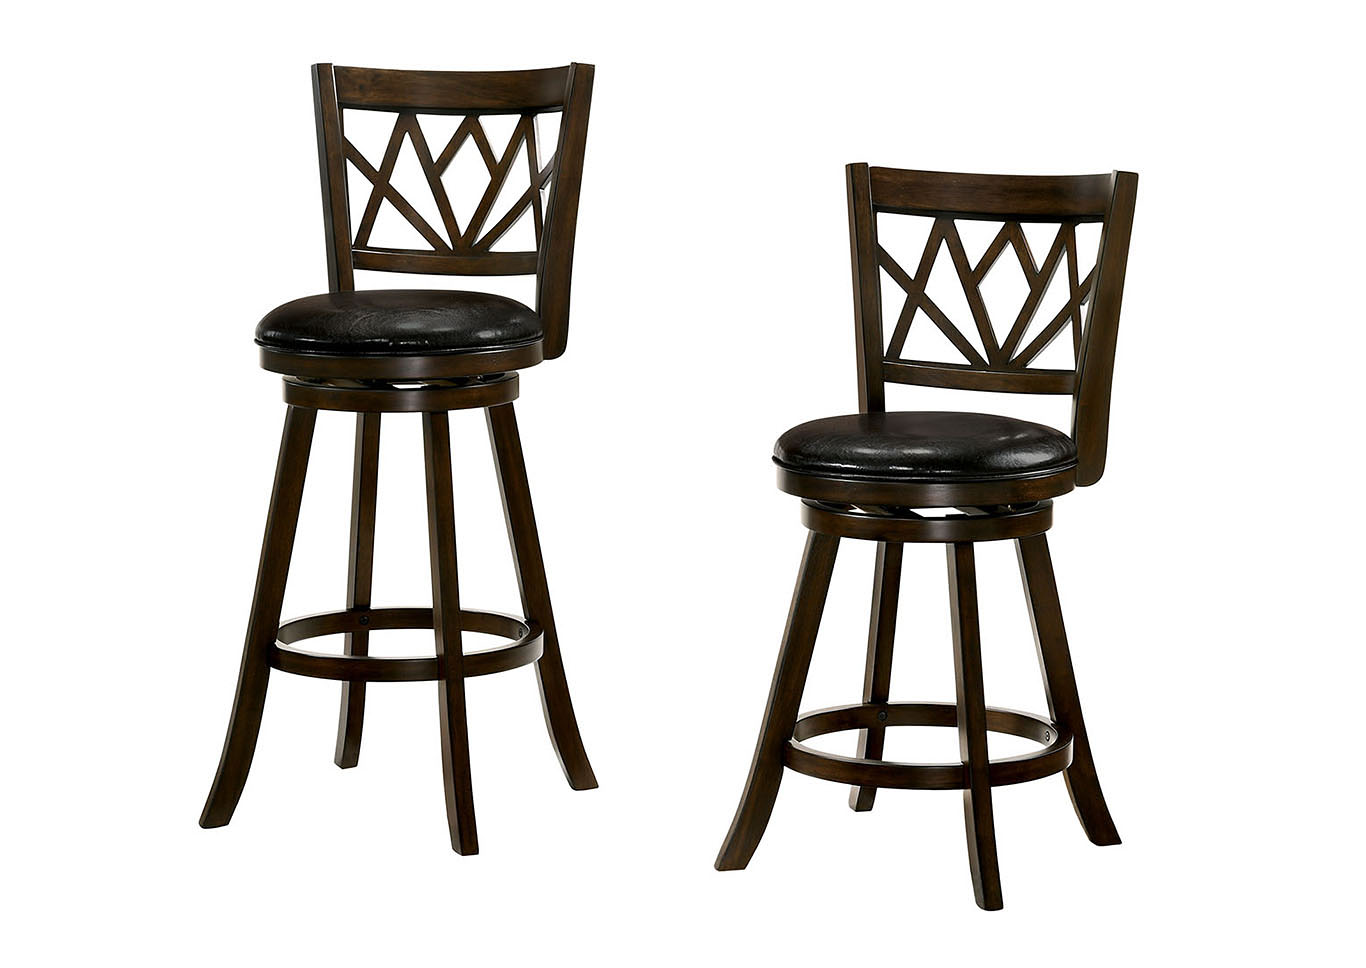 Furniture Ville Bronx Ny Tolley Maple 24 Swivel Barstool Wpadded